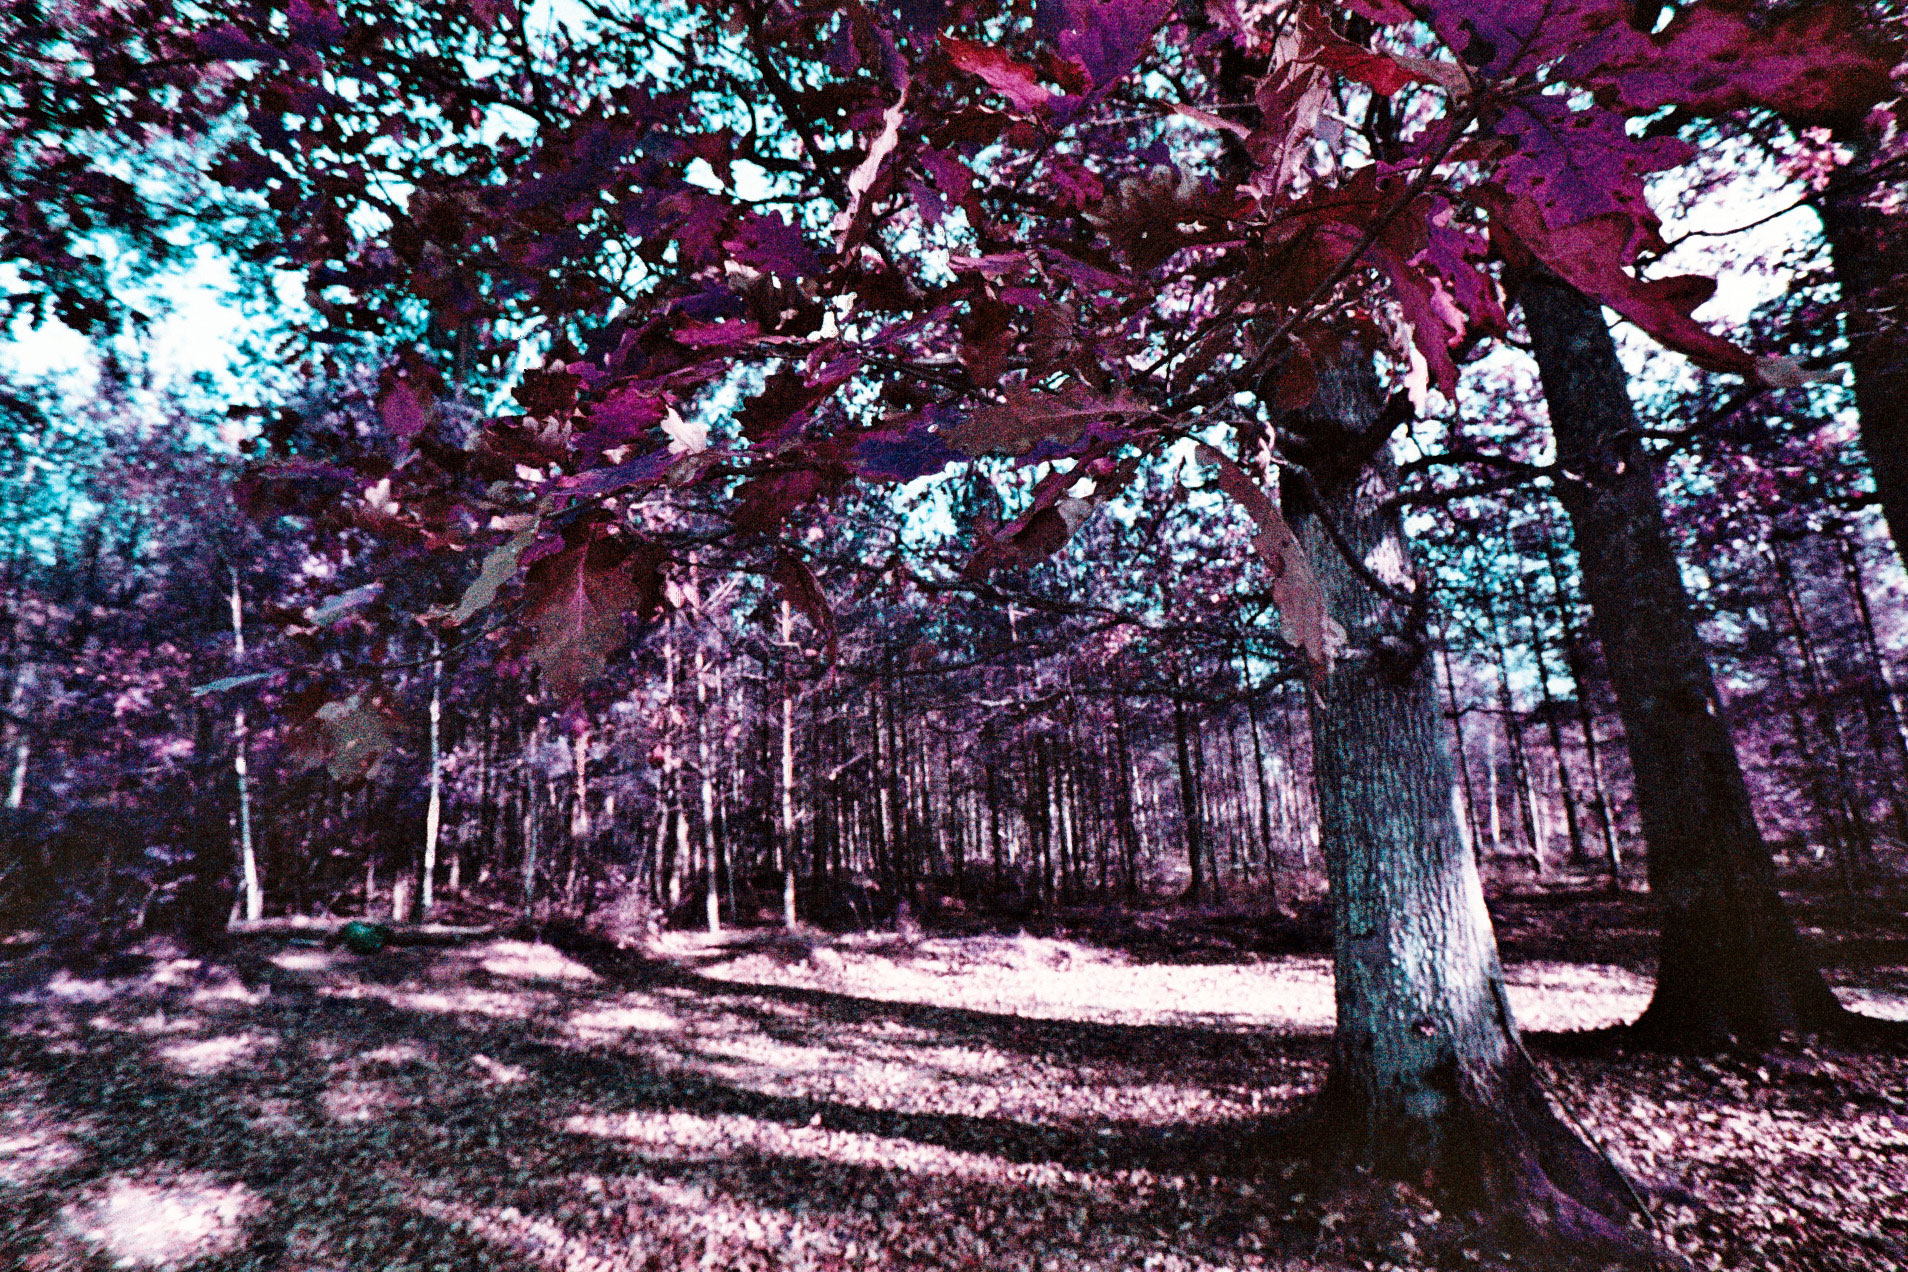 05_EOS1N_LOMOCHROME_PURPLE_200_copyright_ThomasApp.jpg